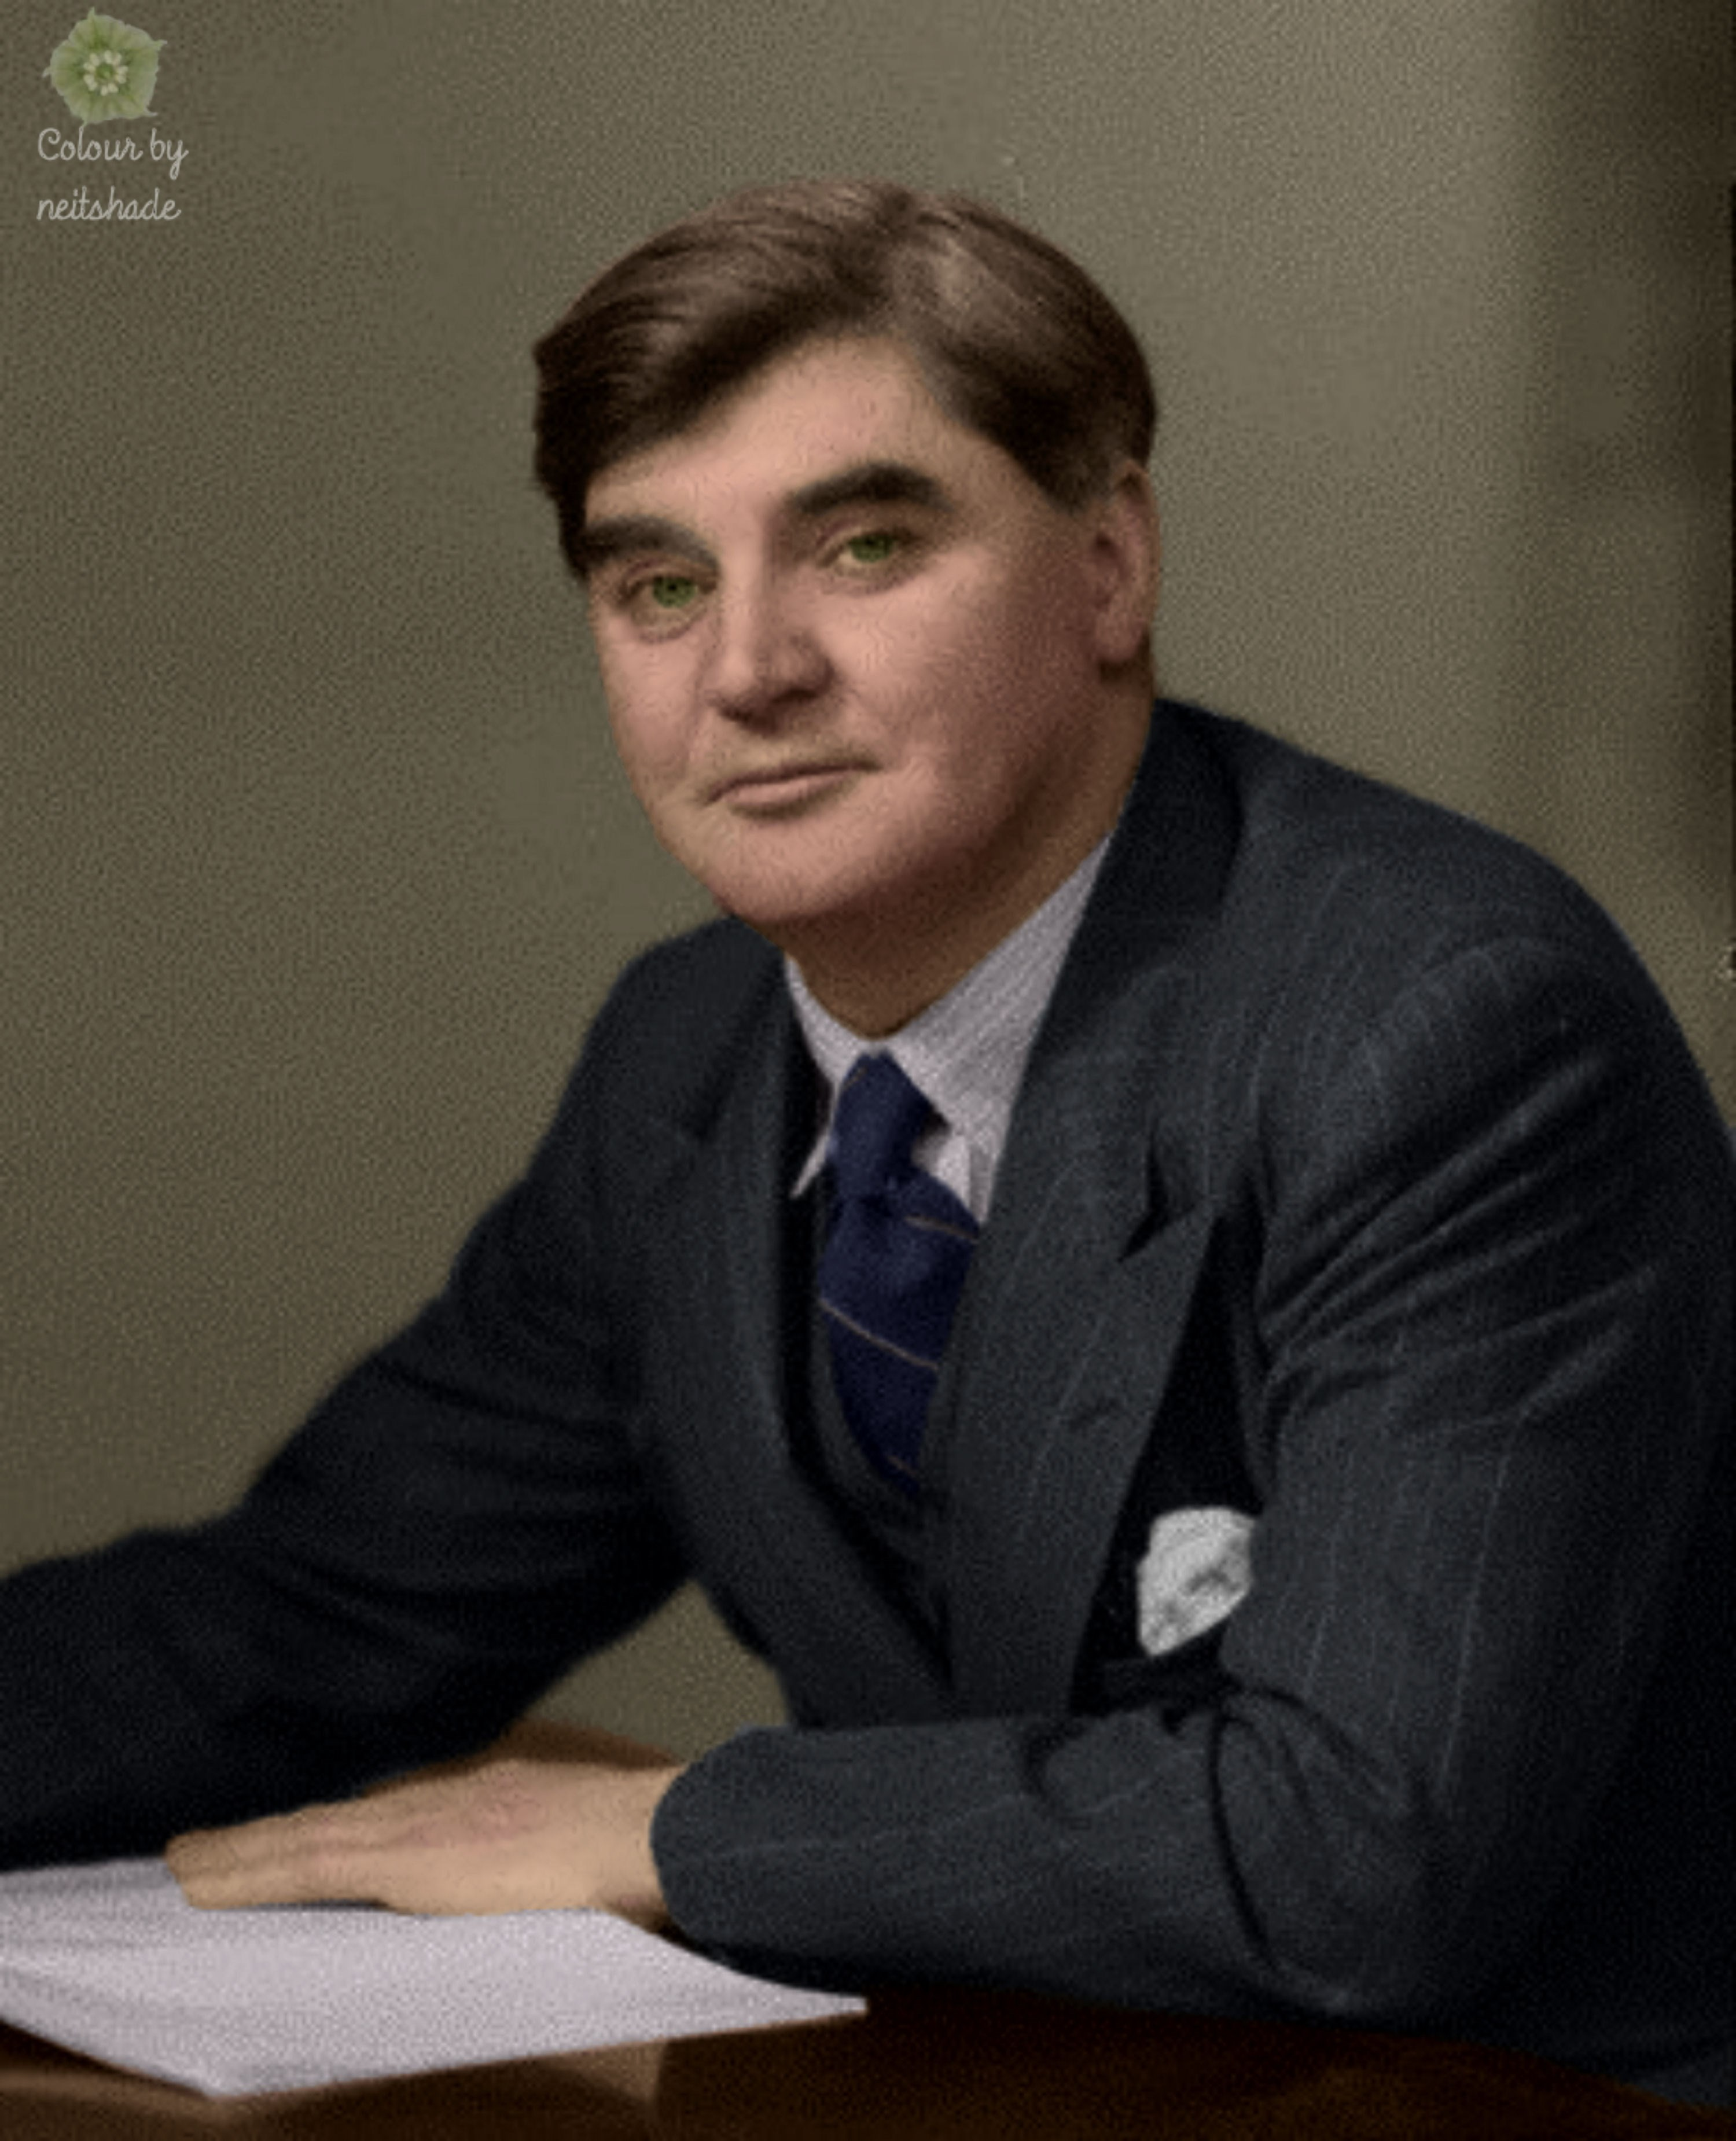 Aneurin u201cNyeu201d Bevan, around 1945, at which time he was preparing ...